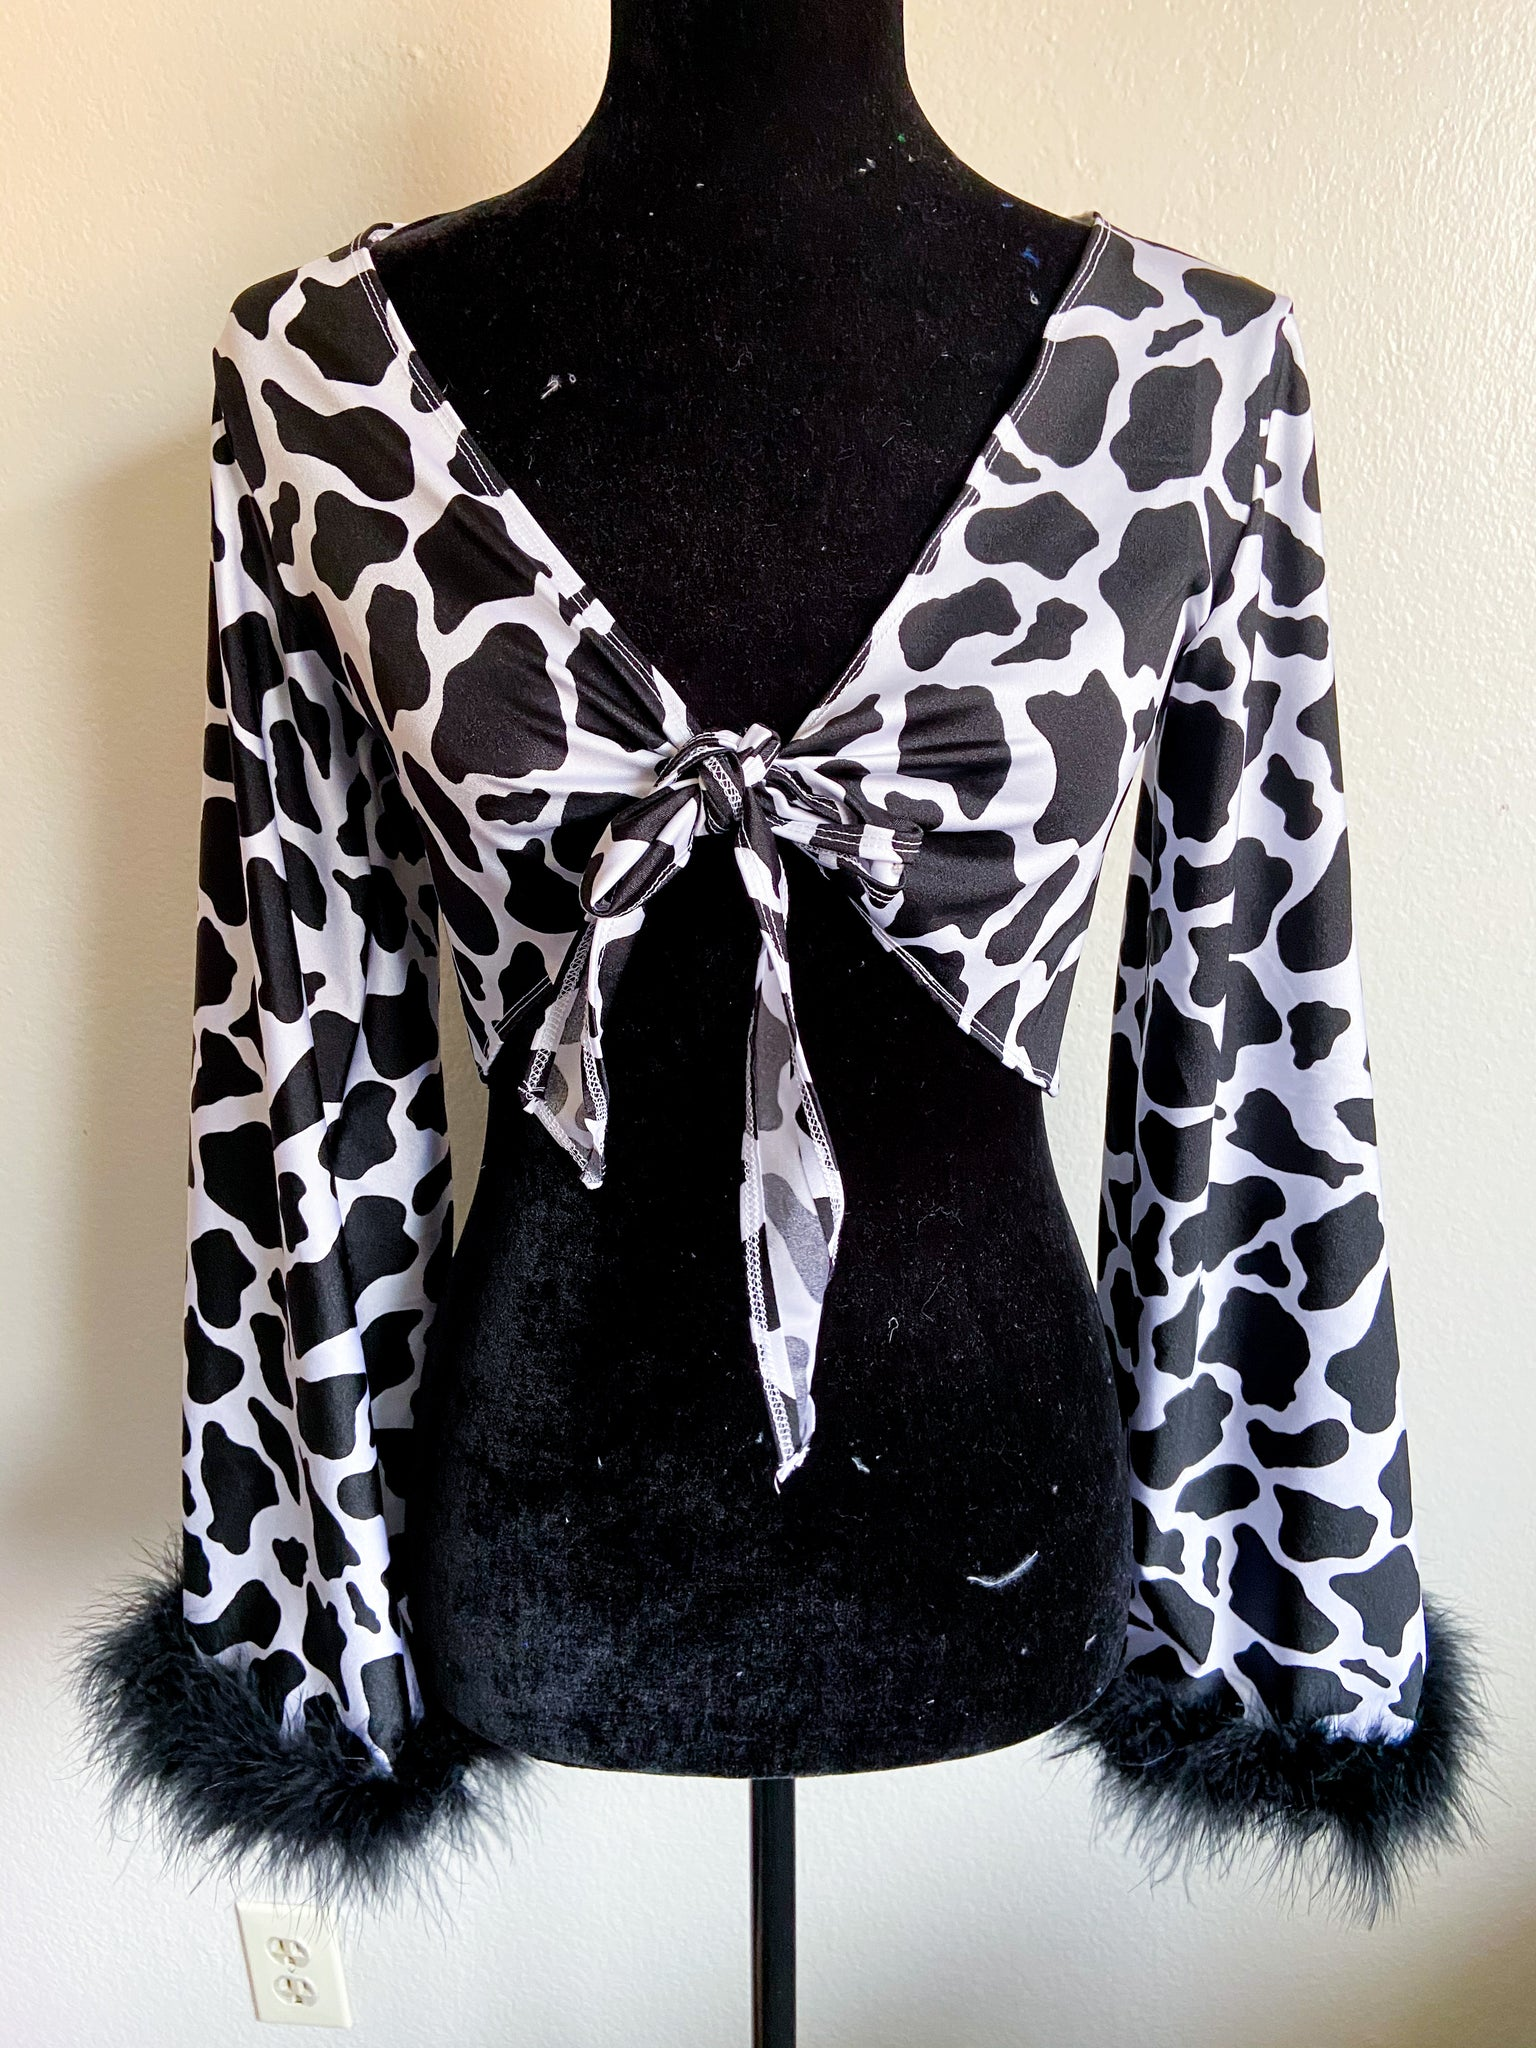 Cow bell sleeve top